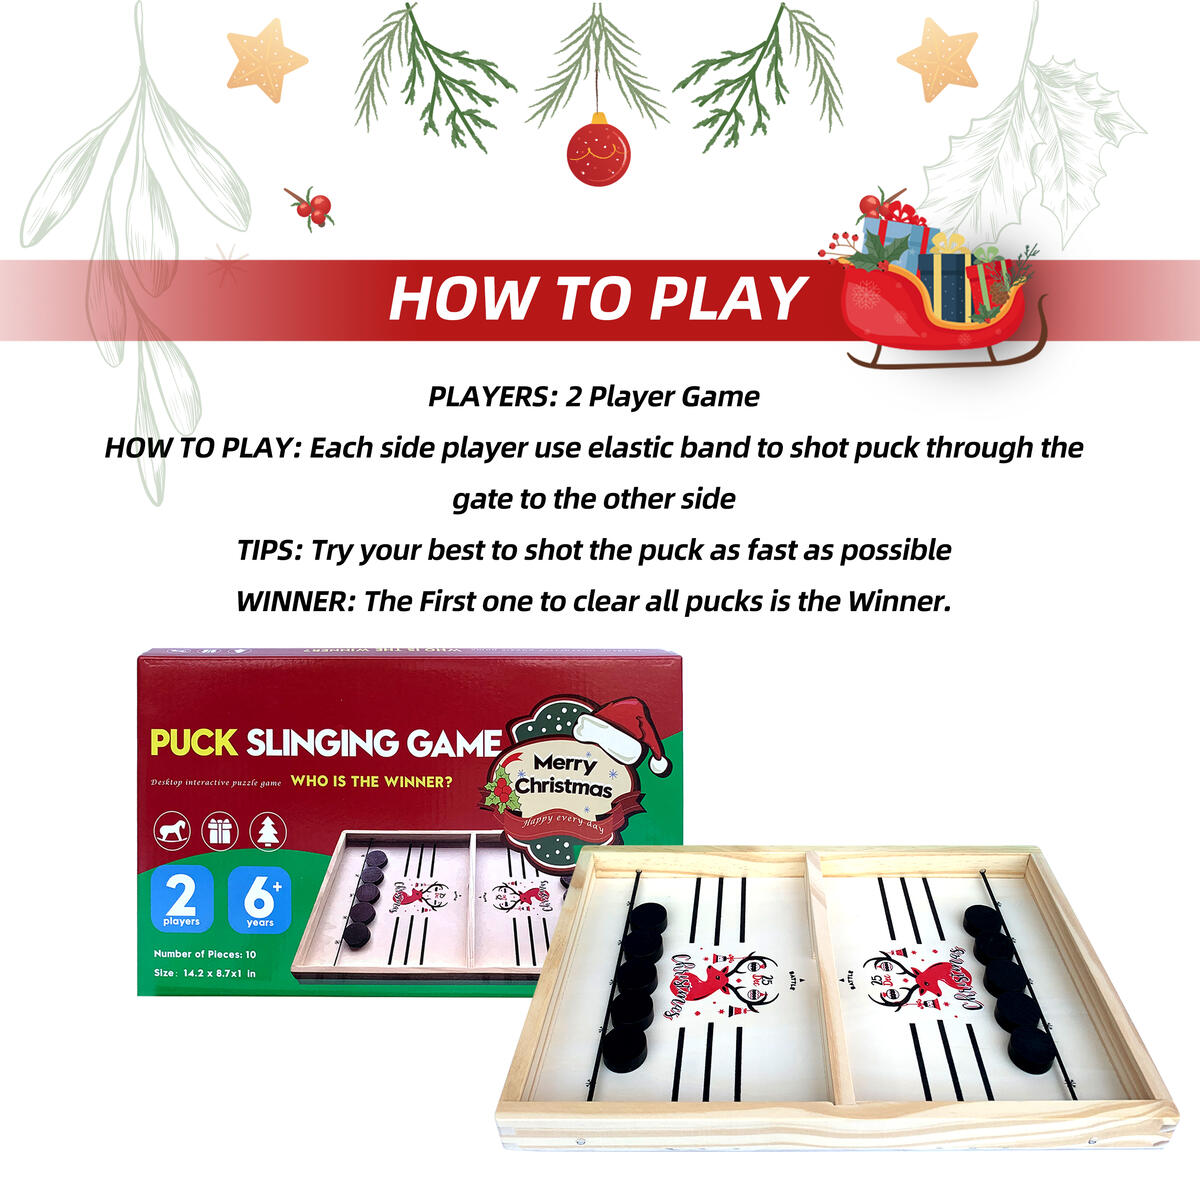 Daniel's Fast Sling Puck Game-Foosball Winner Board Game for Holiday Surprise -Speed Puck Game for Family Fun Night-Large Size Sling Hockey Table Game for Any Ages (22